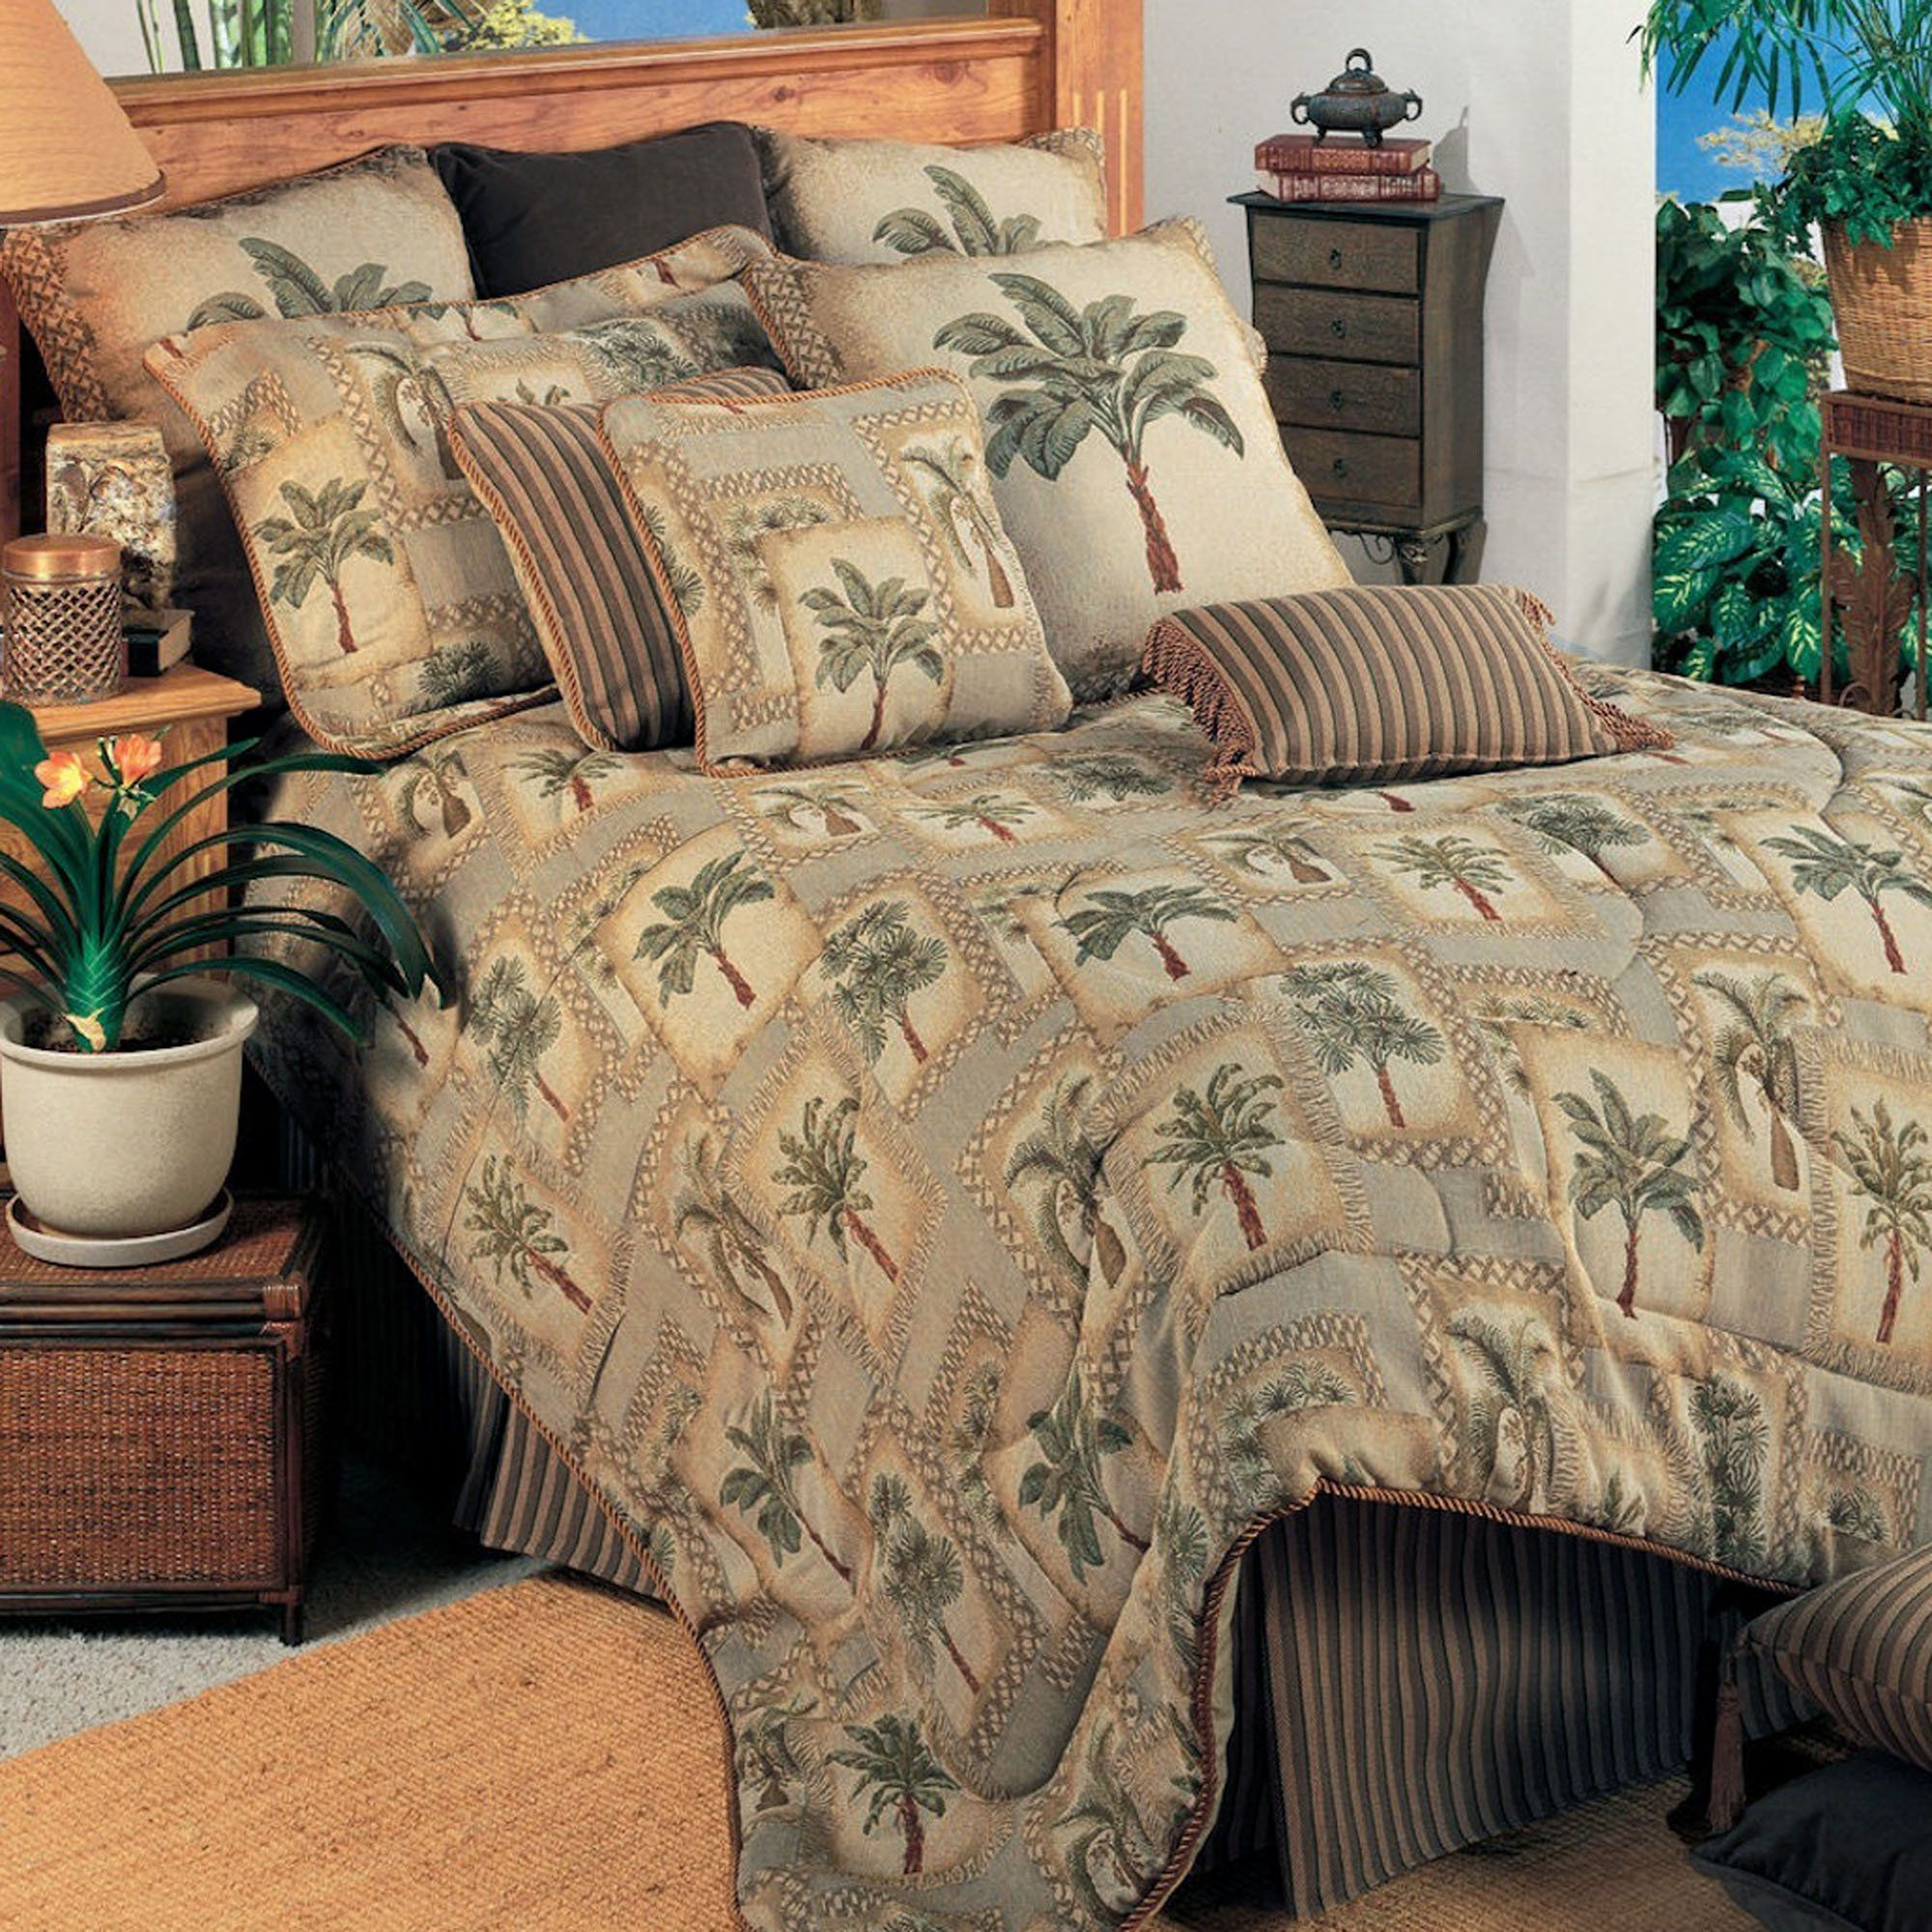 Palm Grove Tropical Palm Tree Comforter Bedding | Comforter sets